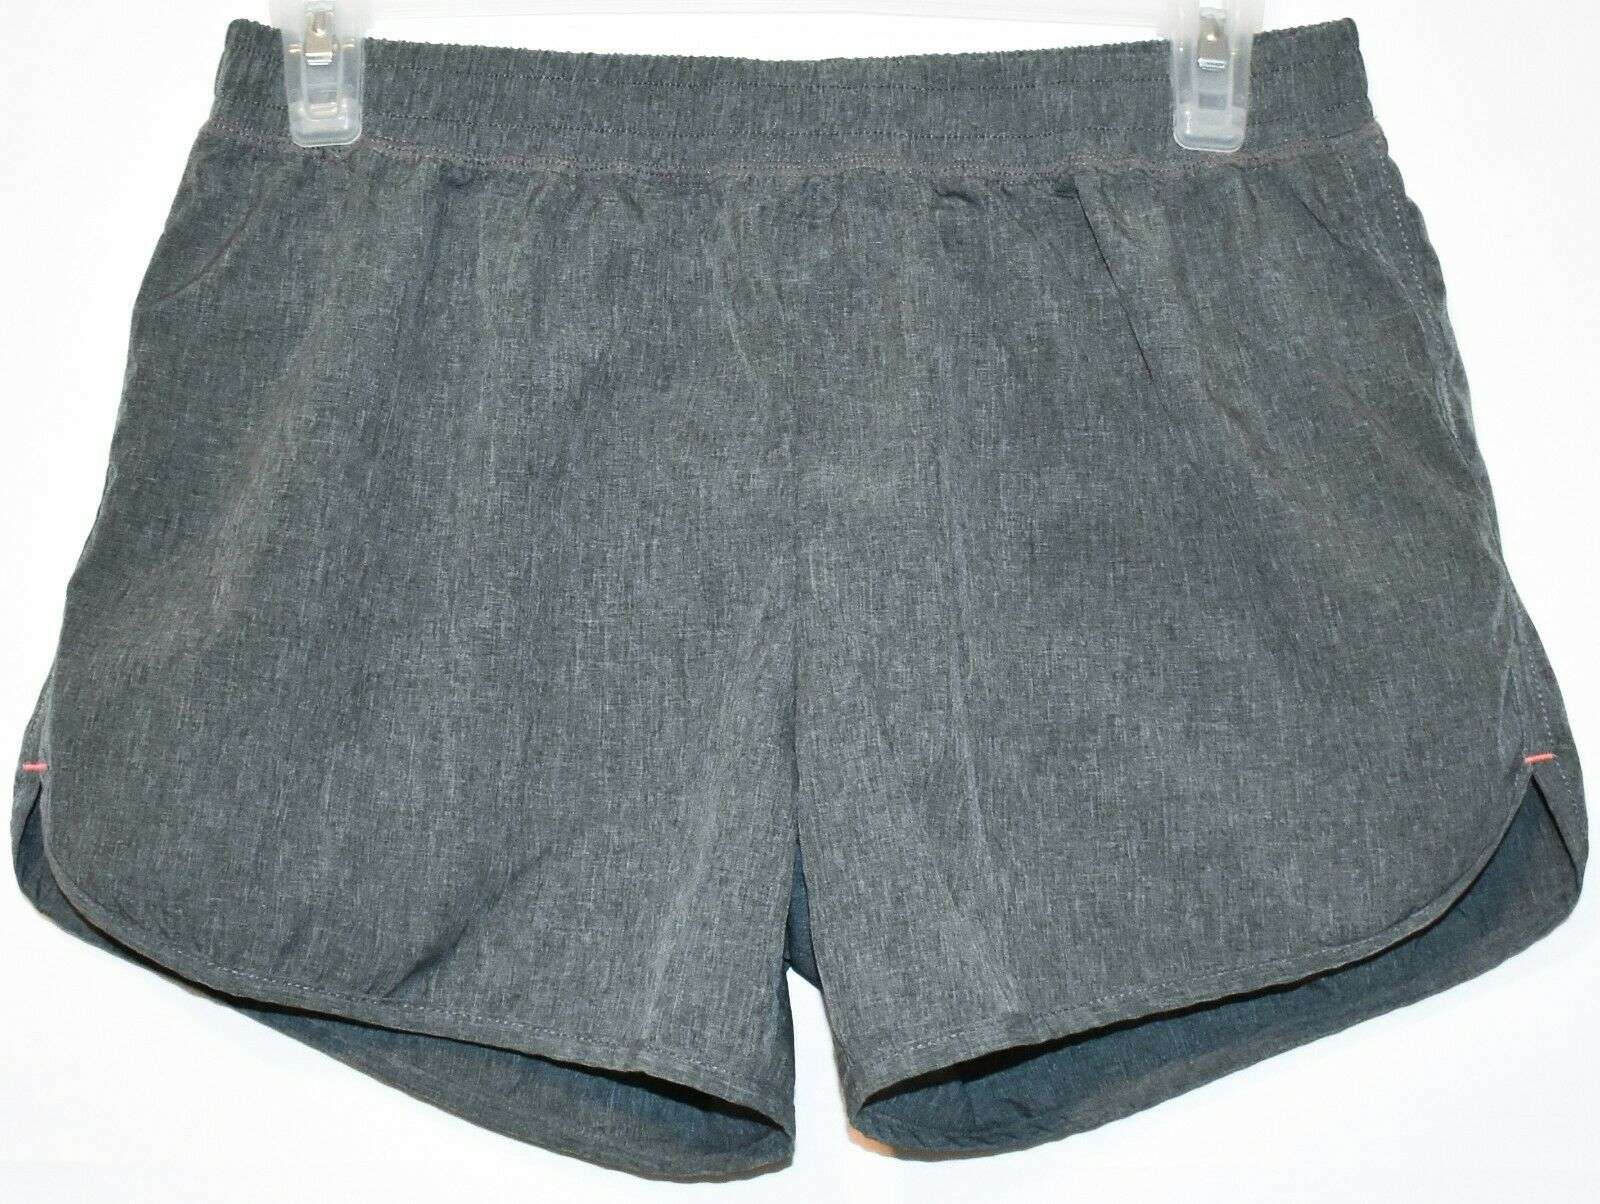 Champion Women's C9 Gray Athletic Gym Workout Running Shorts Size 27